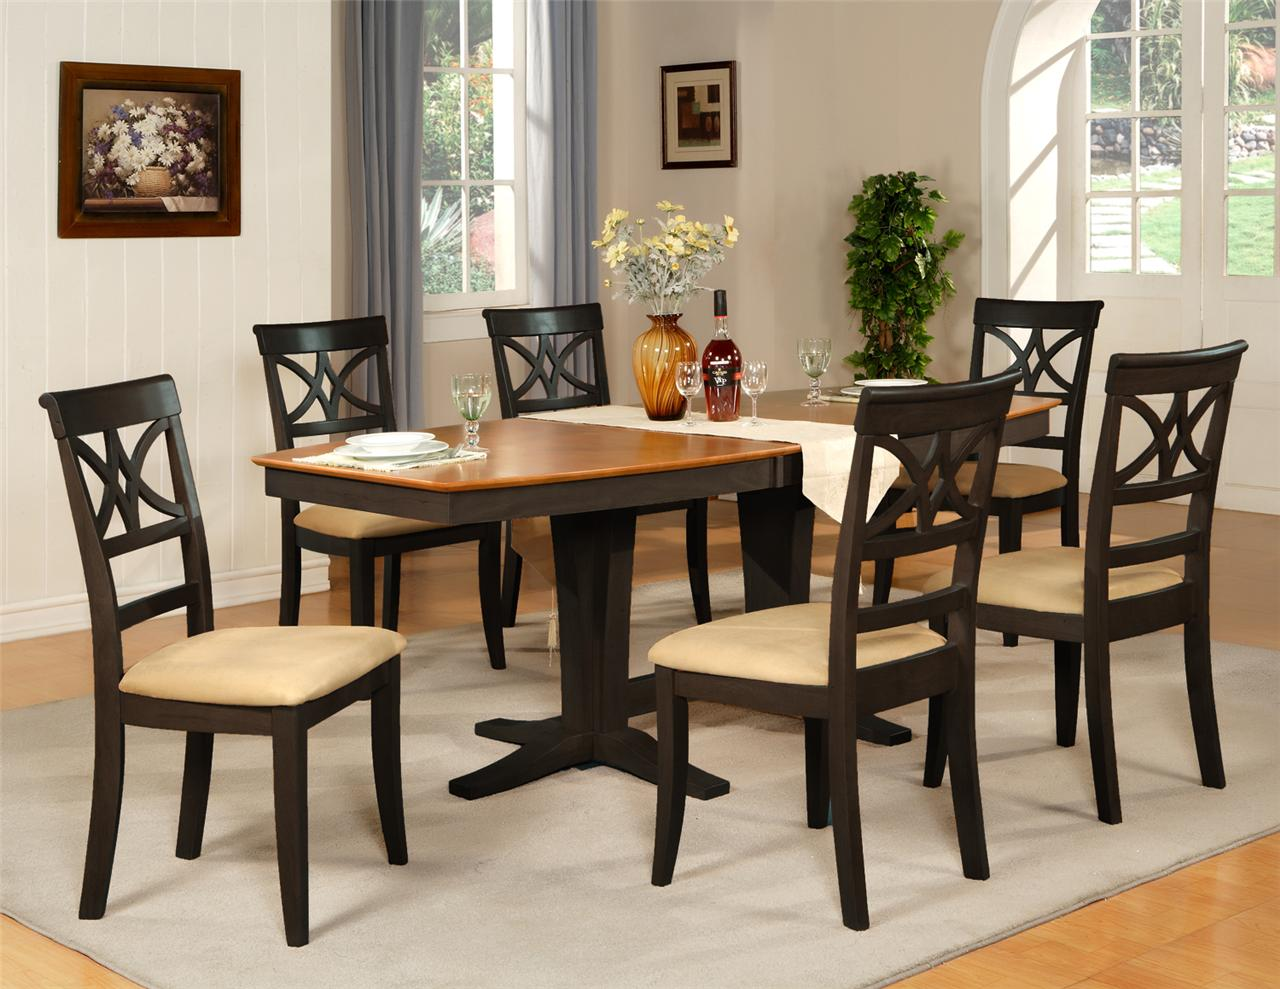 Excellent Dining Room Table and Chair Sets 1280 x 989 · 152 kB · jpeg